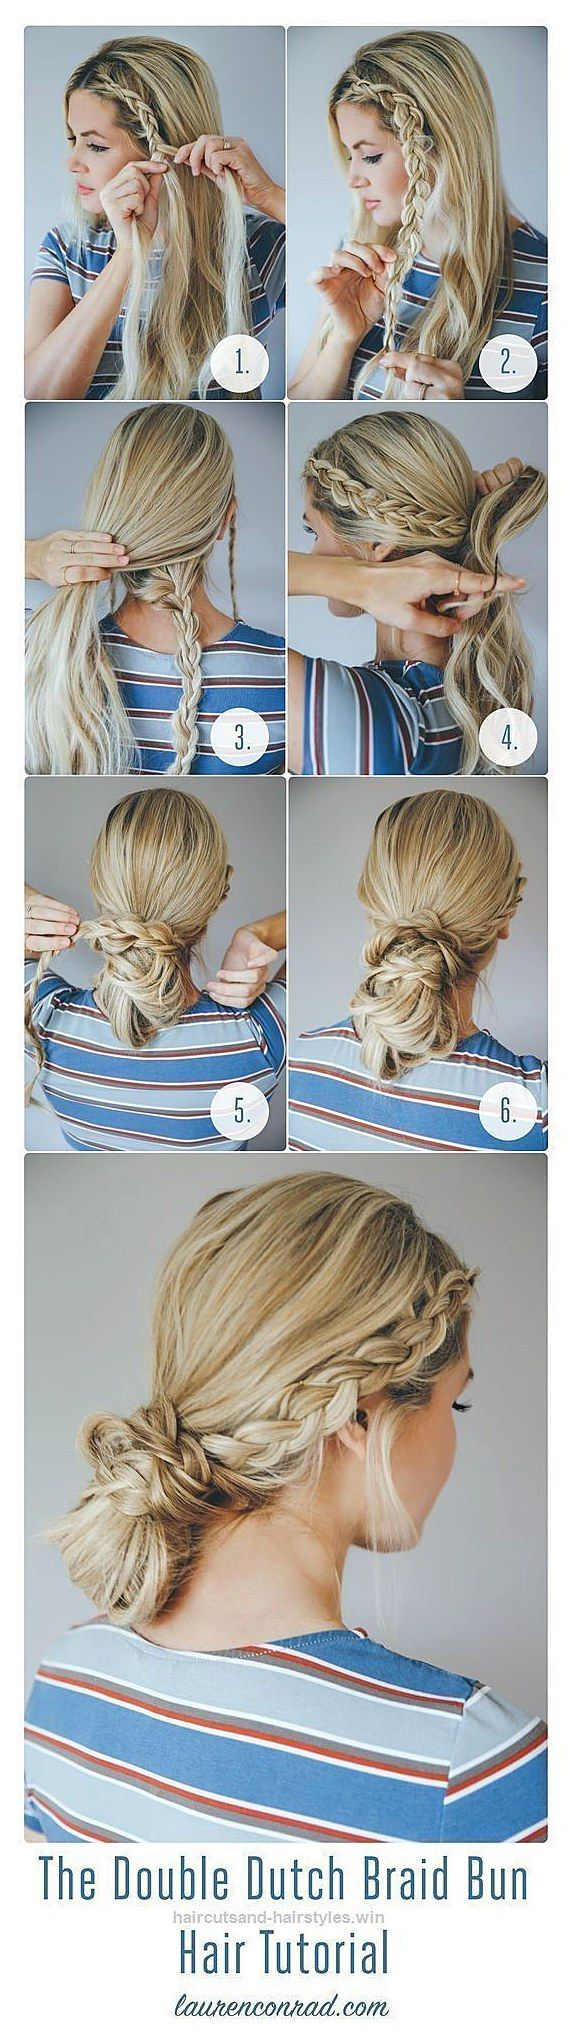 Cool easy braided hairstyles for long hair tap the pin if you